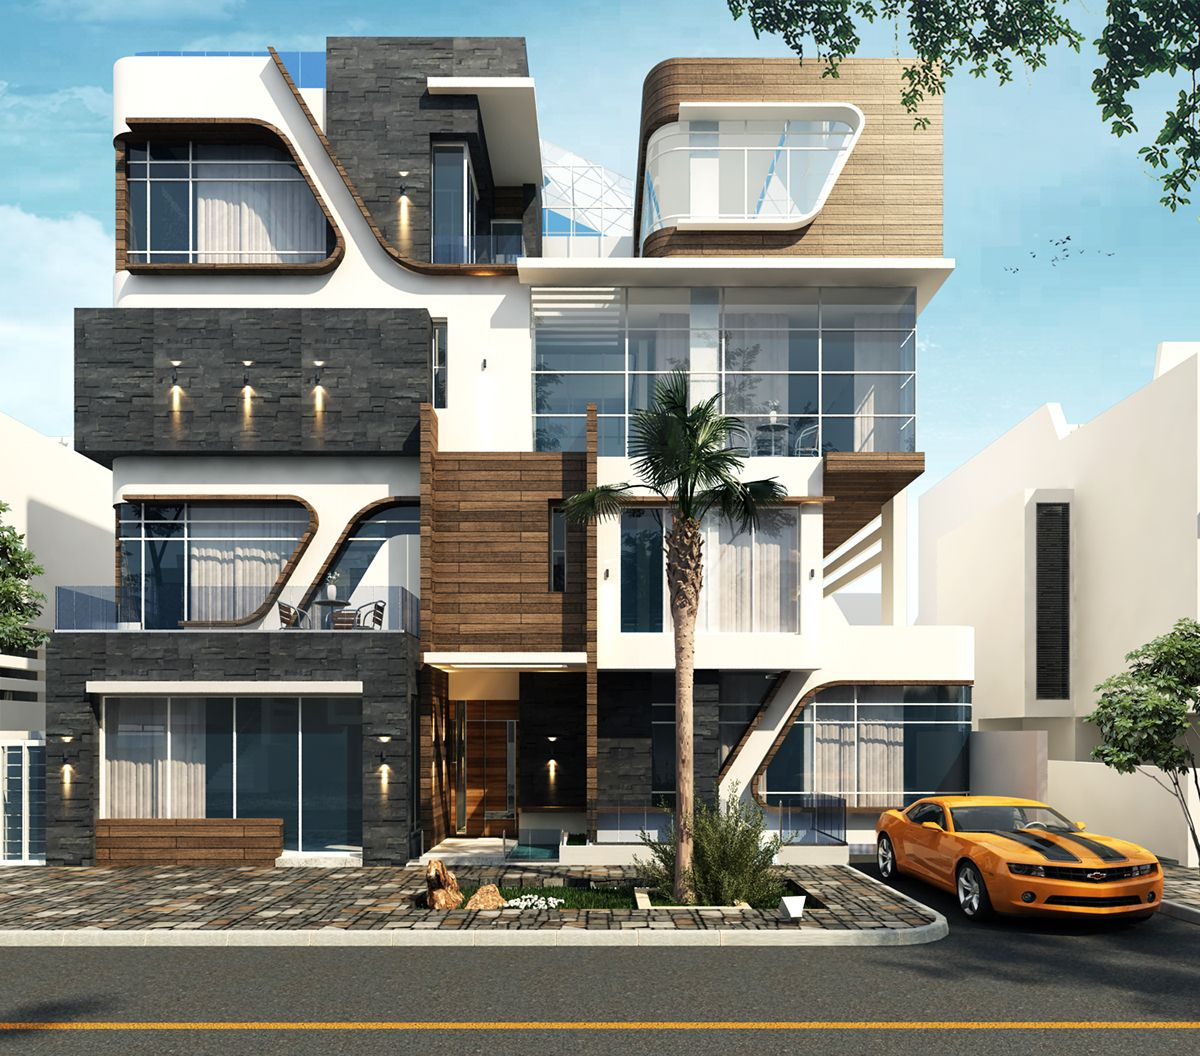 Exterior Home Design Software: Villa By Mo'men Gamal. Software: Vray, Autodesk 3ds Max